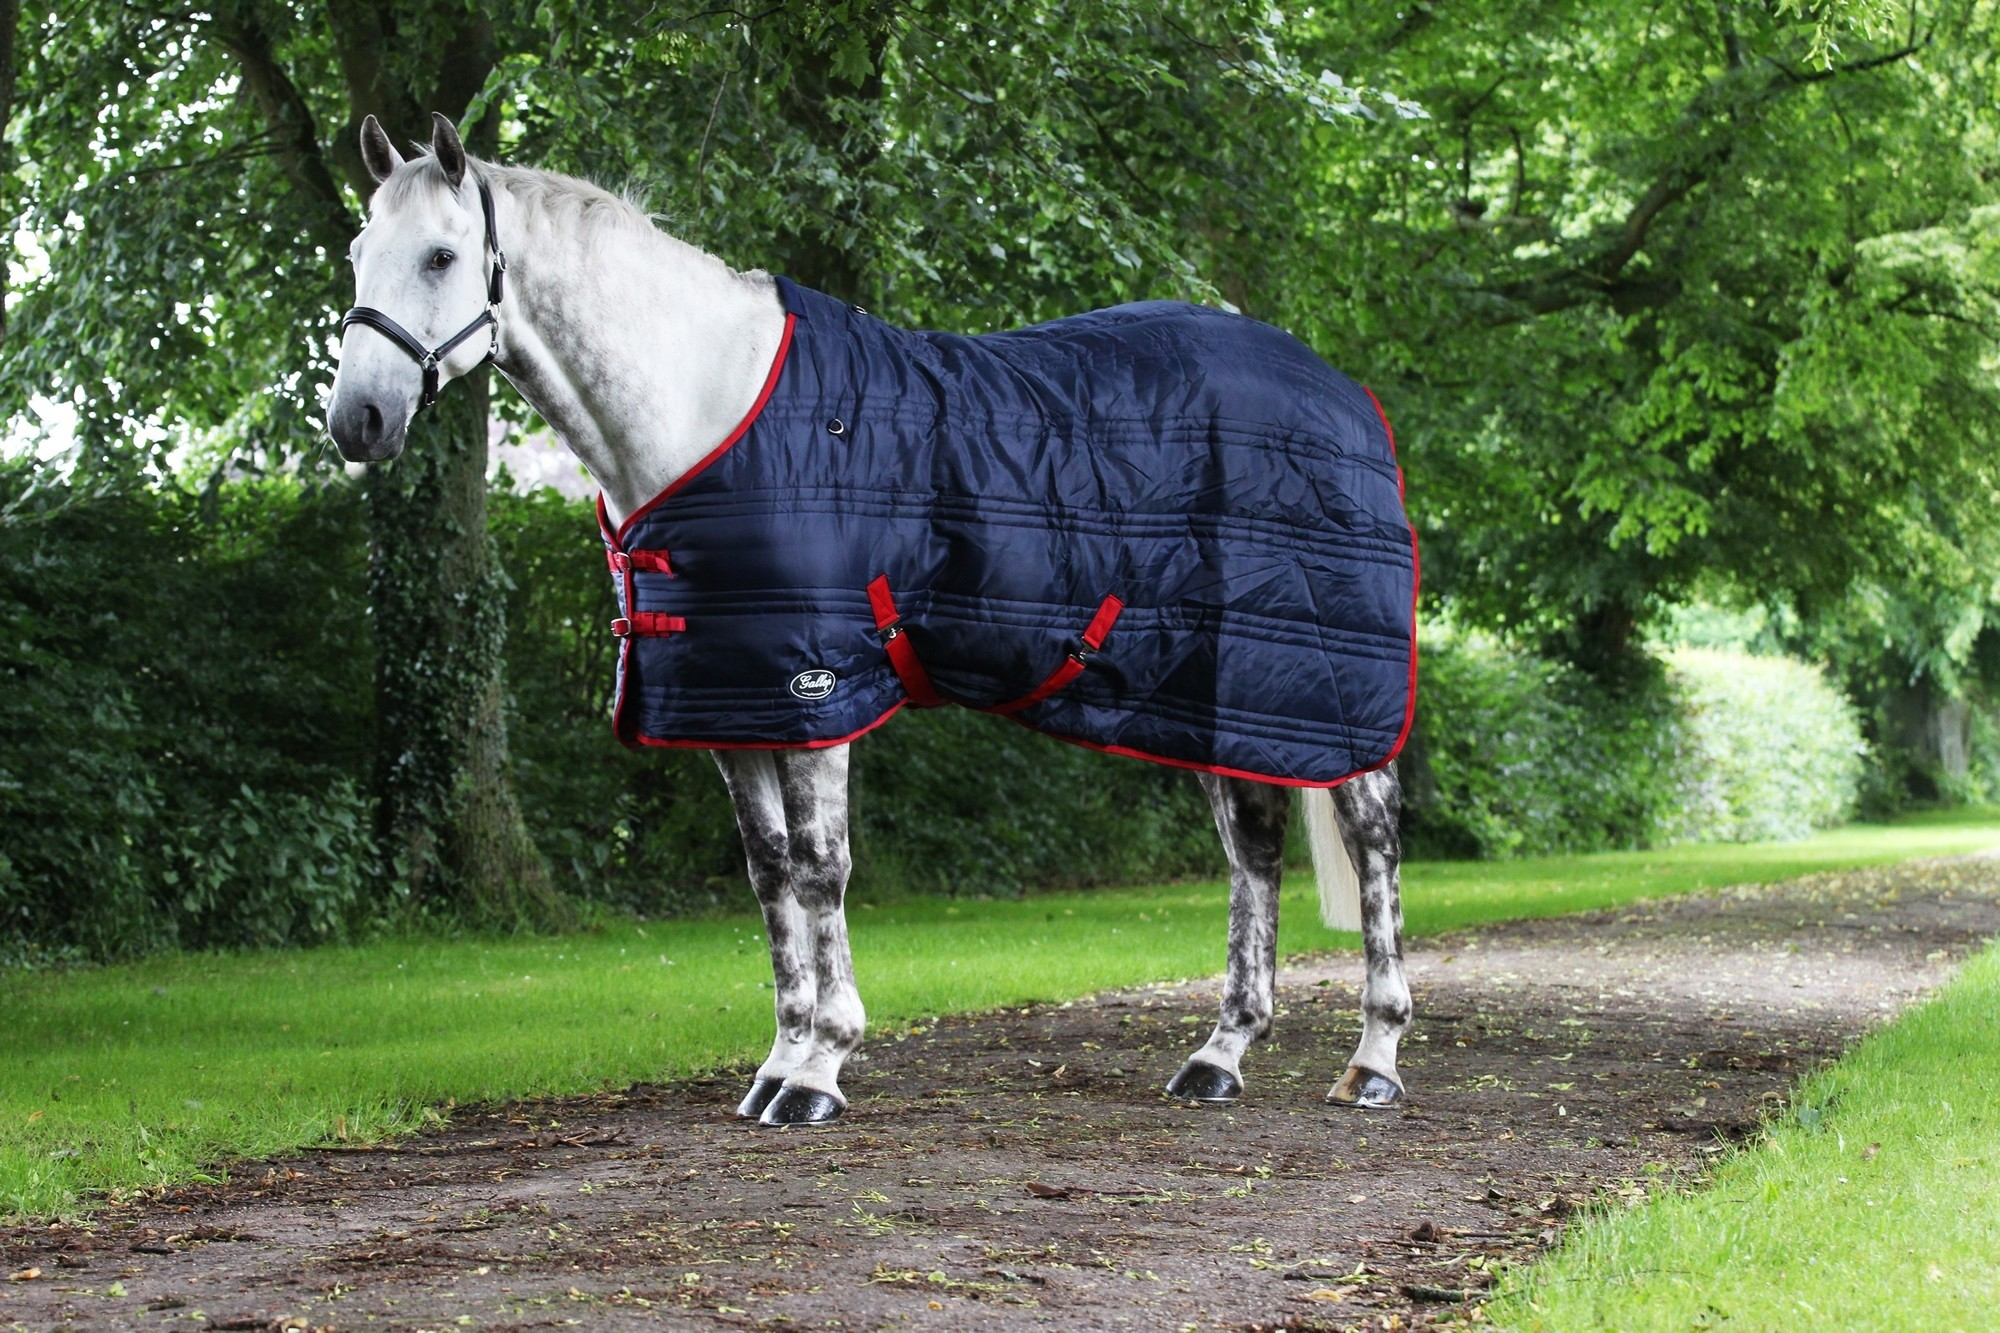 Gallop Defender 200 Stable Rug  - Thomas Irving's equestrian and accessories store  Gallop Defender 200 Stable Rug